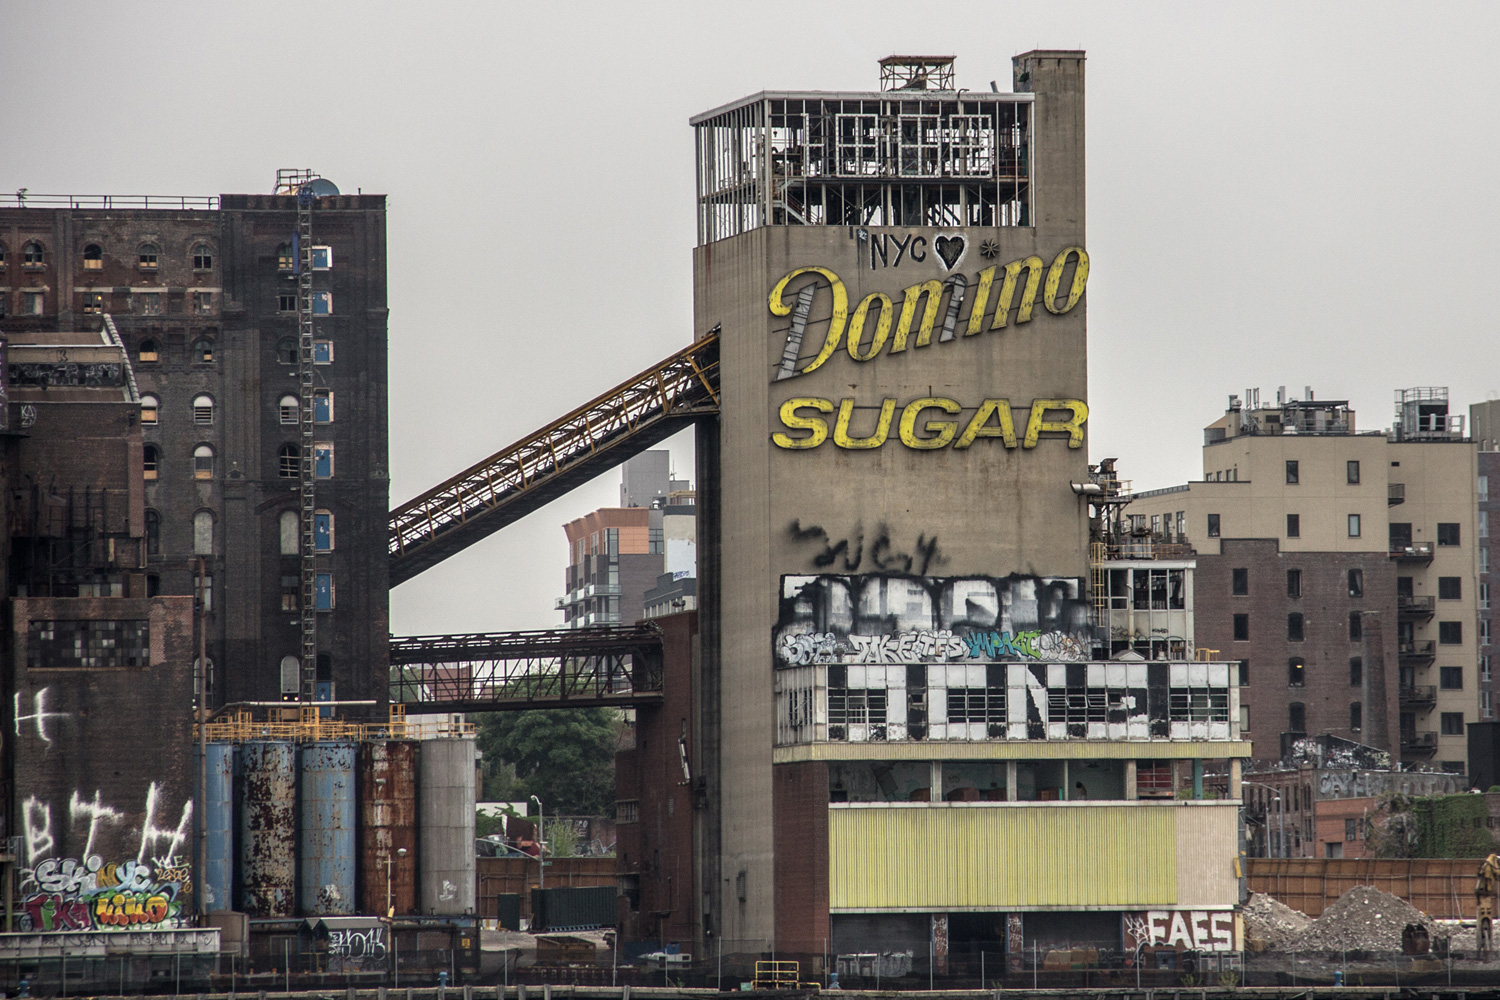 New Domino Sugar Factory Williamsburg on Industrial Warehouse Exterior